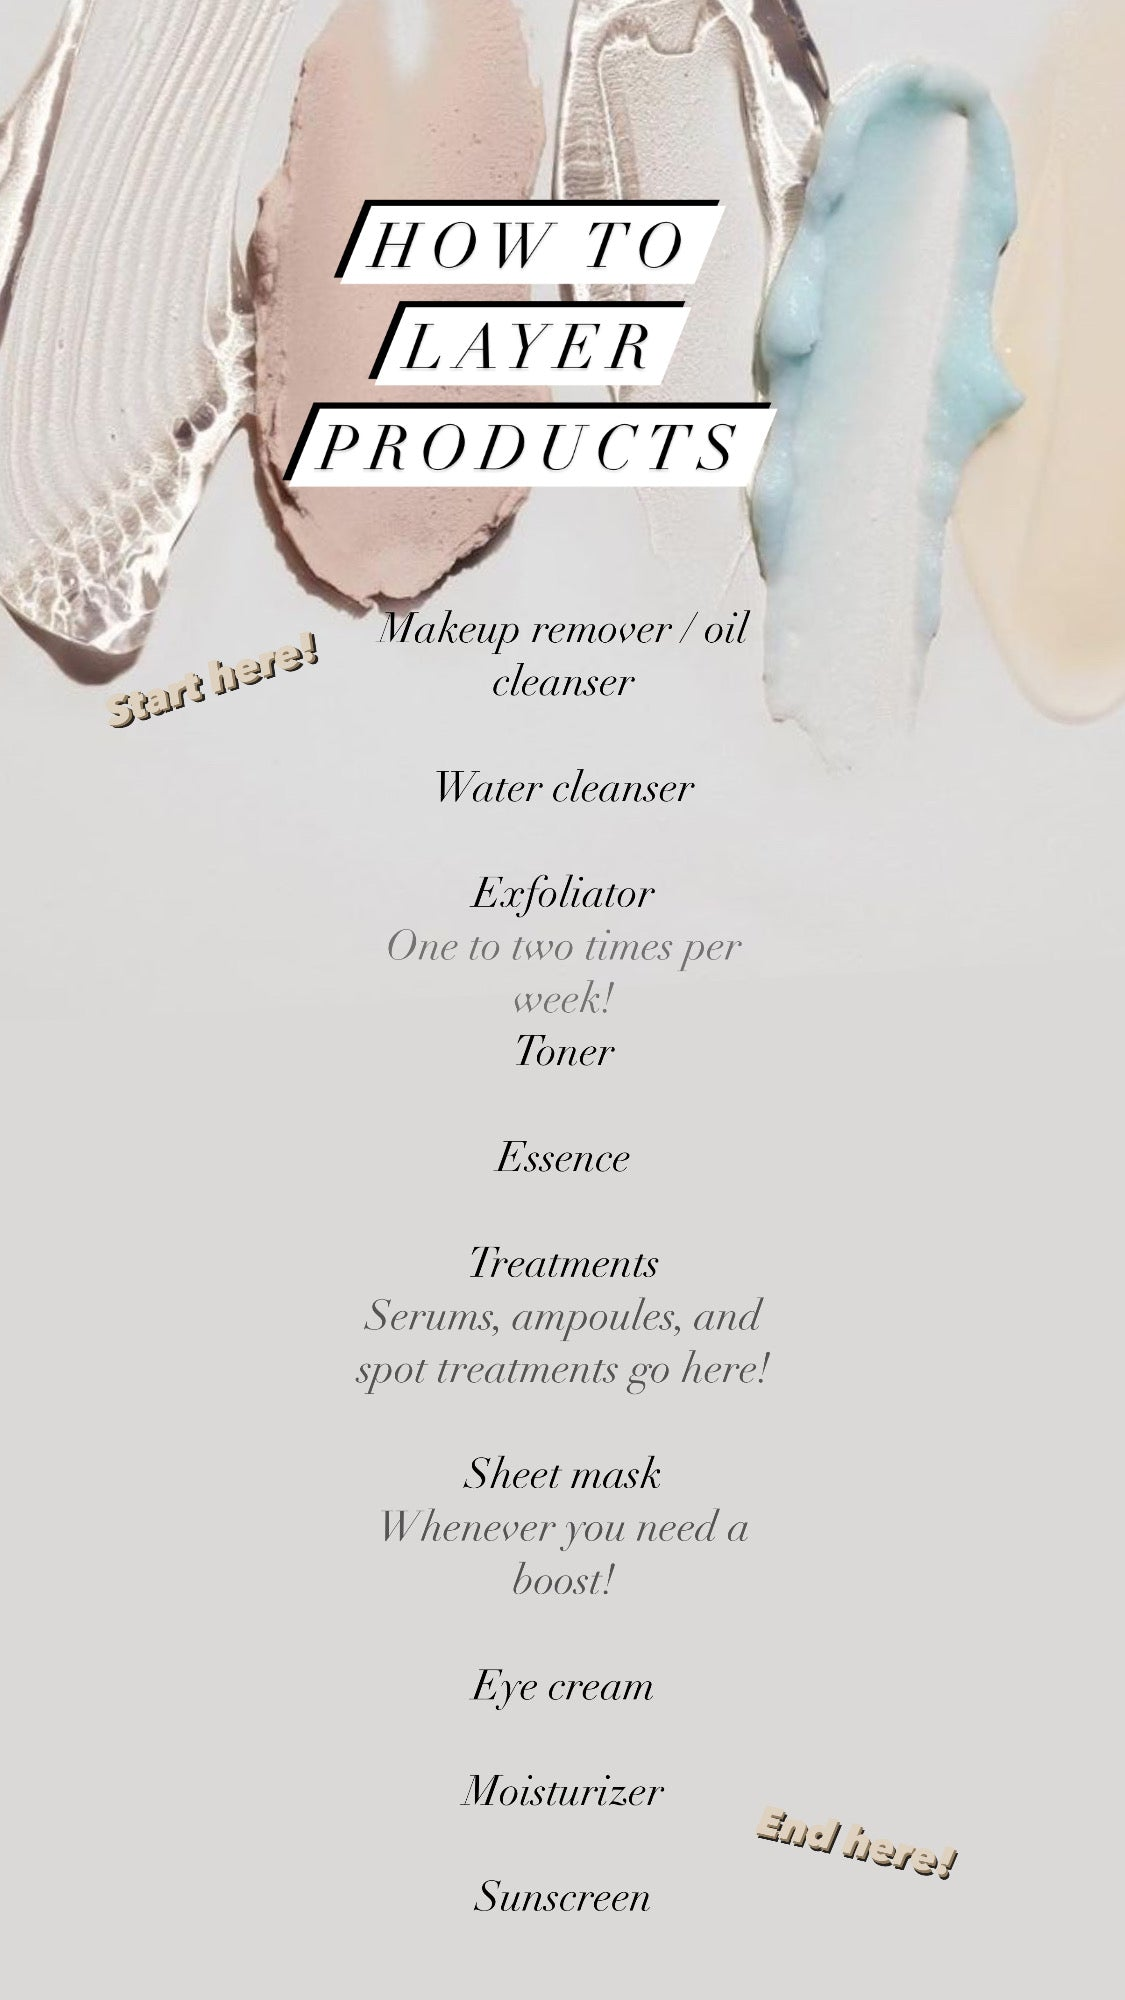 How to layer products the right way - The Magic Glow Co.